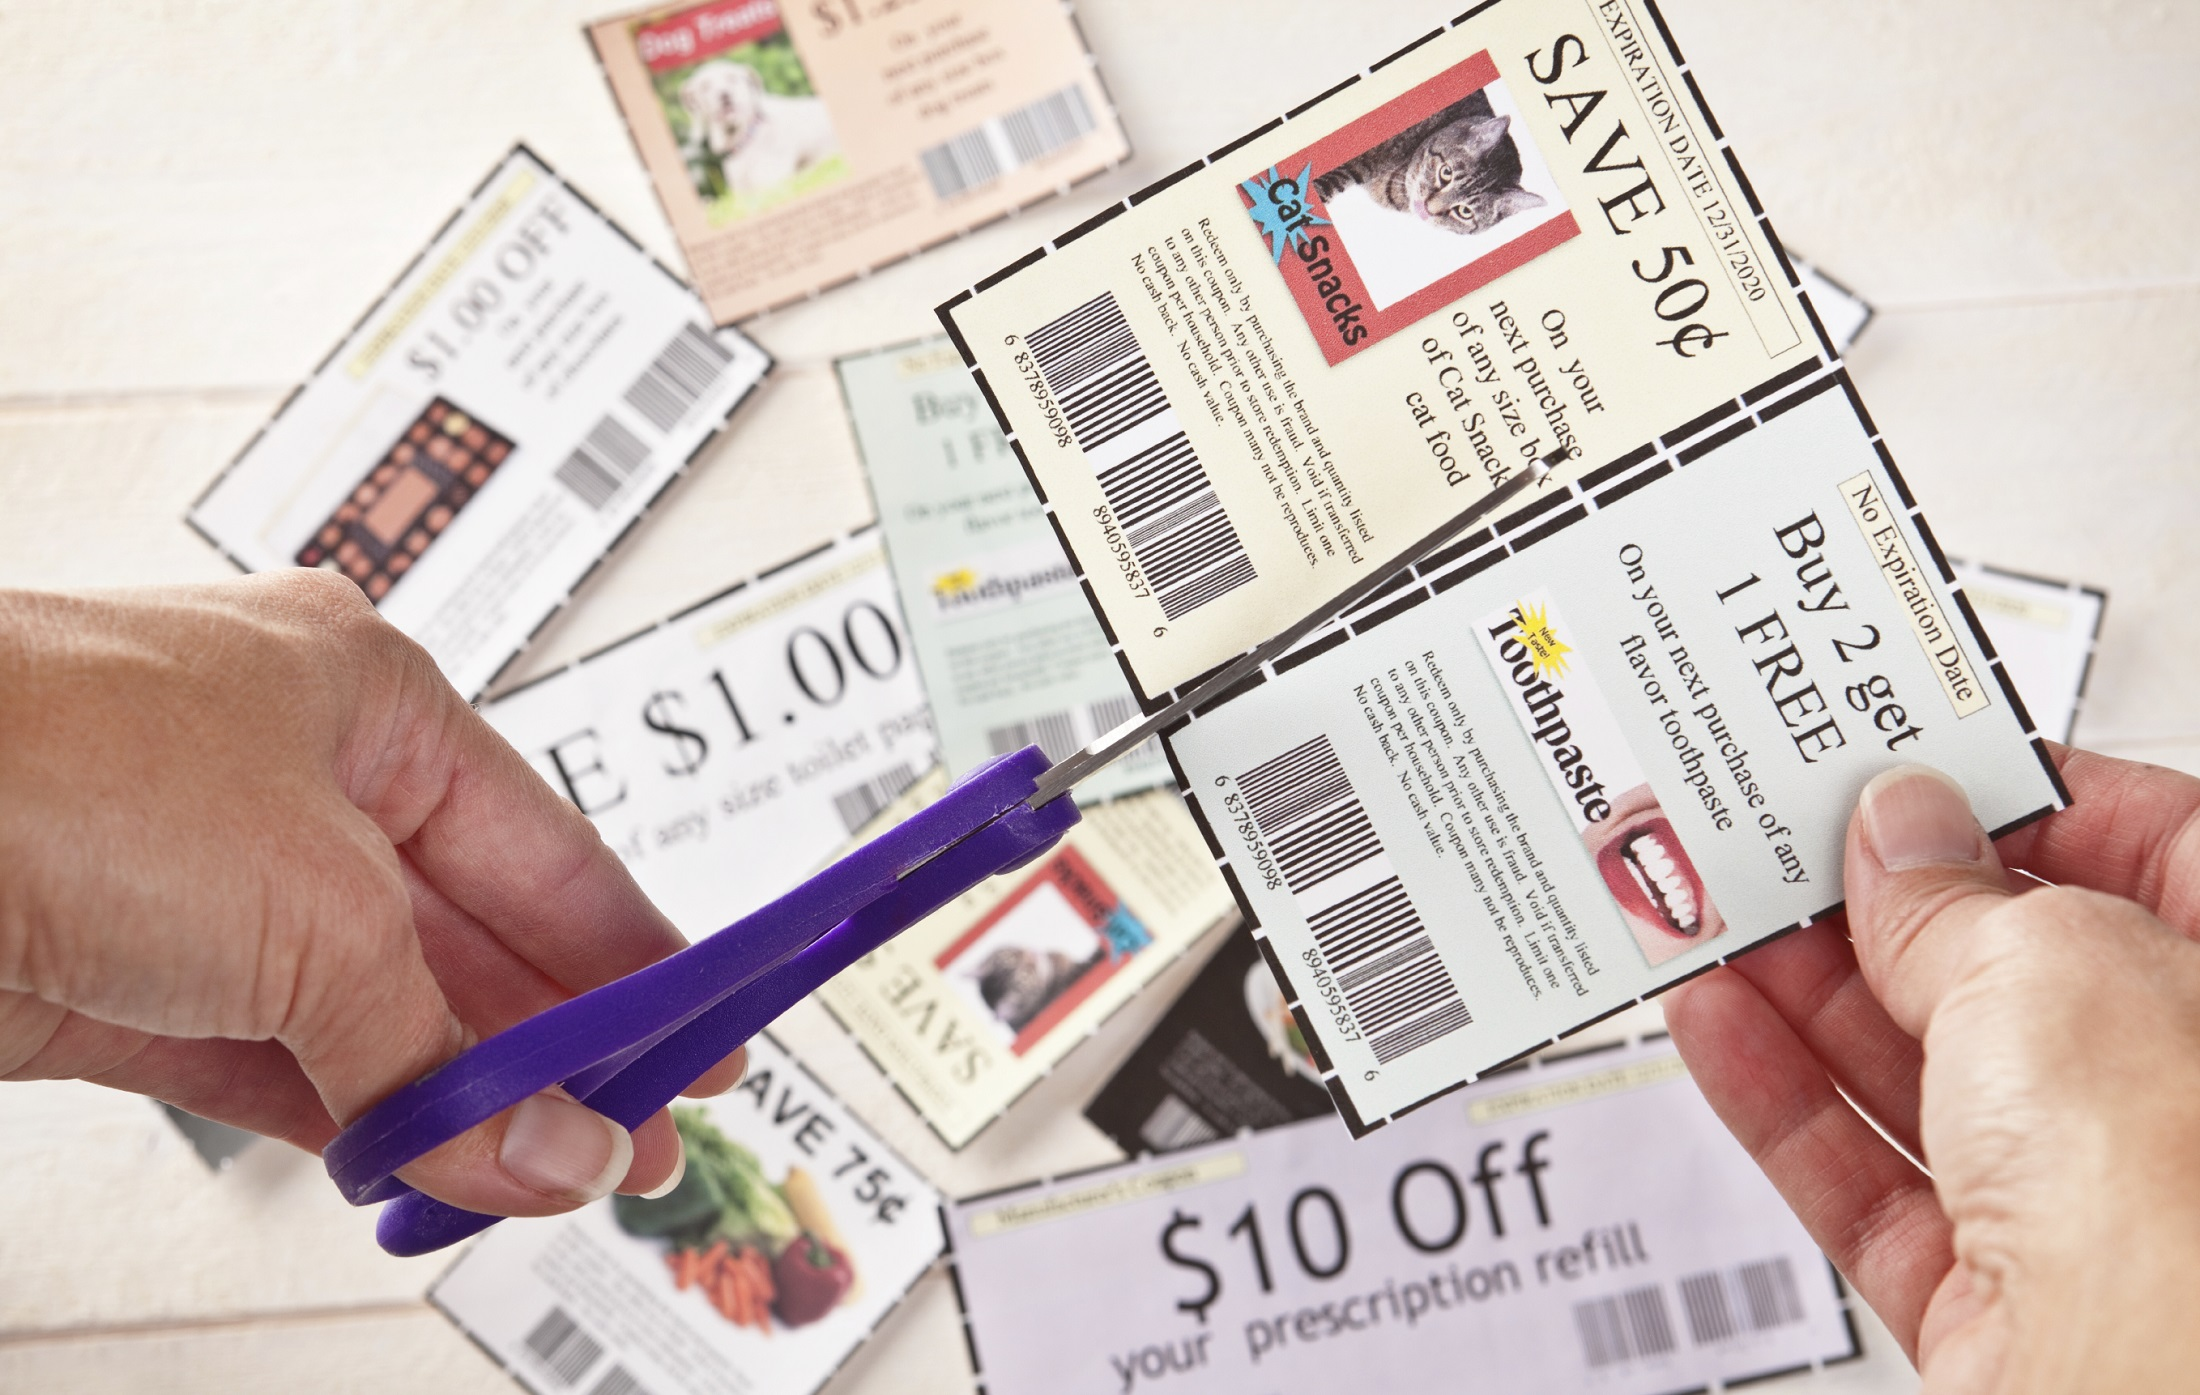 Woman's Hands Cutting Coupons